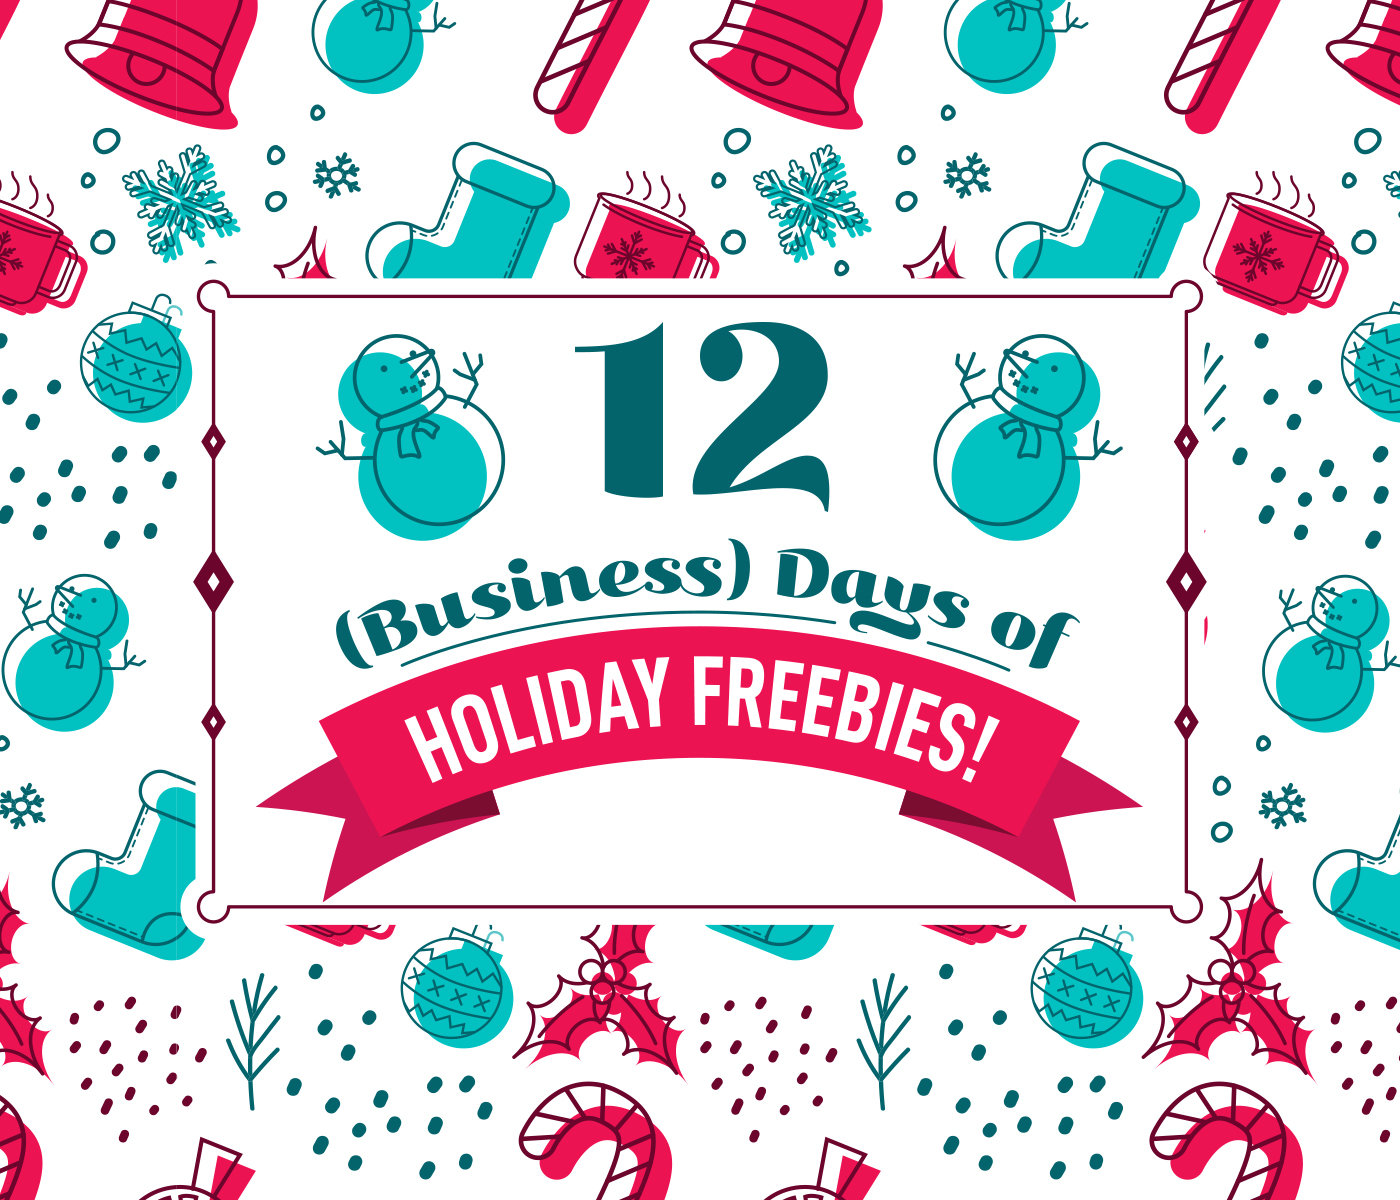 Check out 12 days of freebies at baudville.com